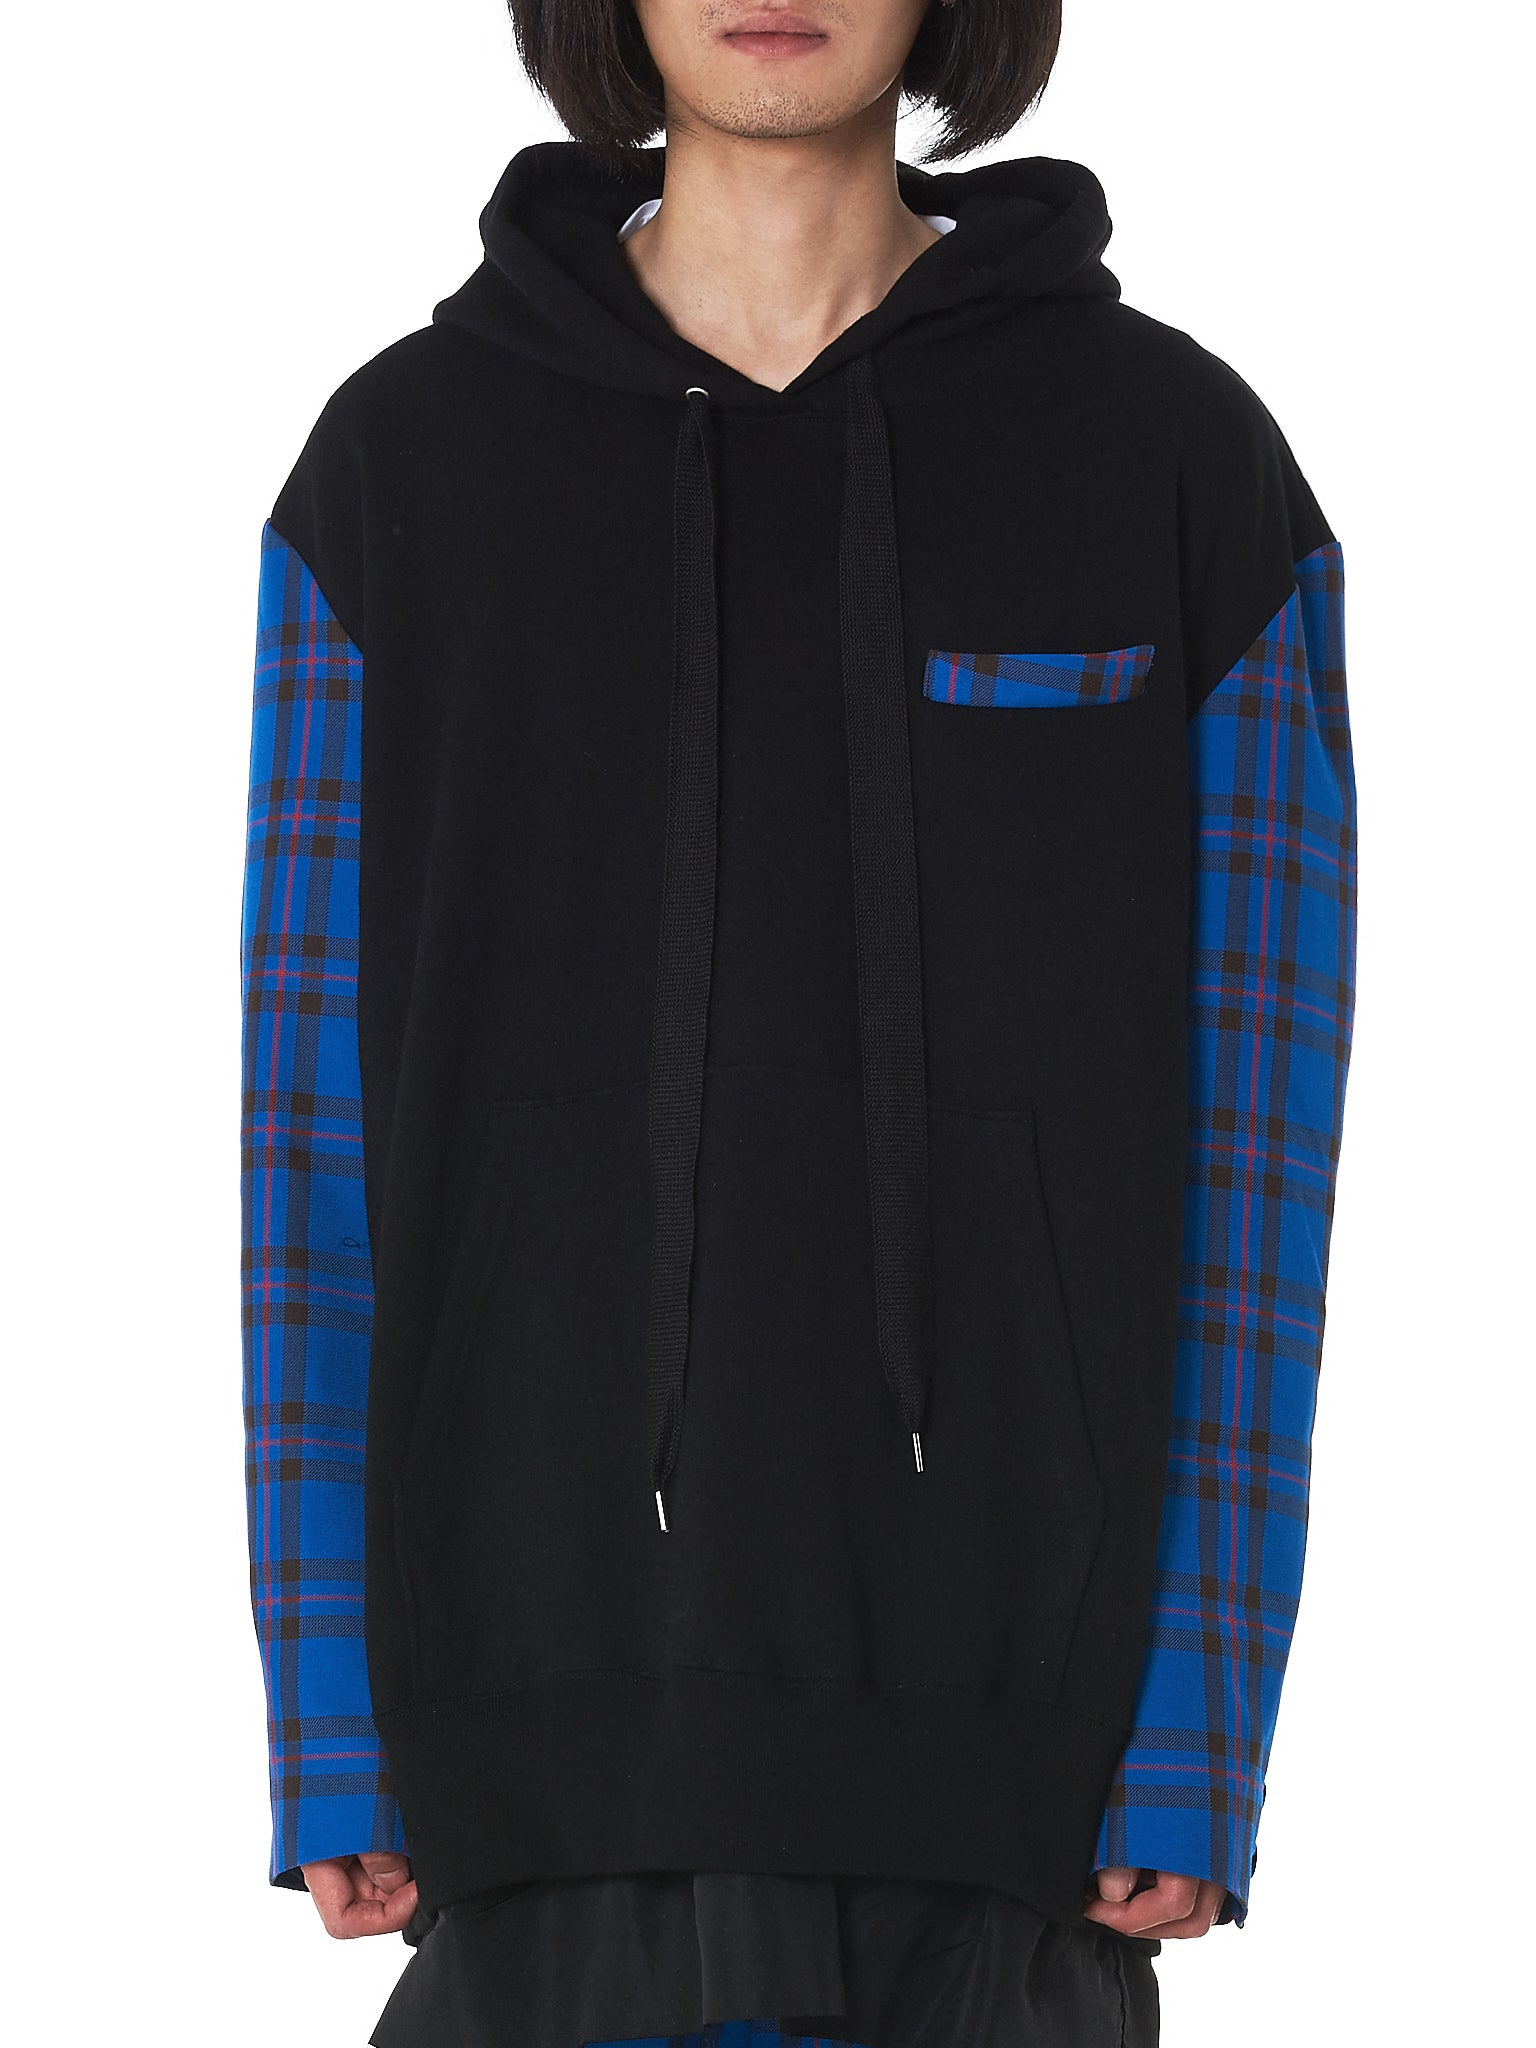 Kidill Check Hoodie - Hlorenzo Front